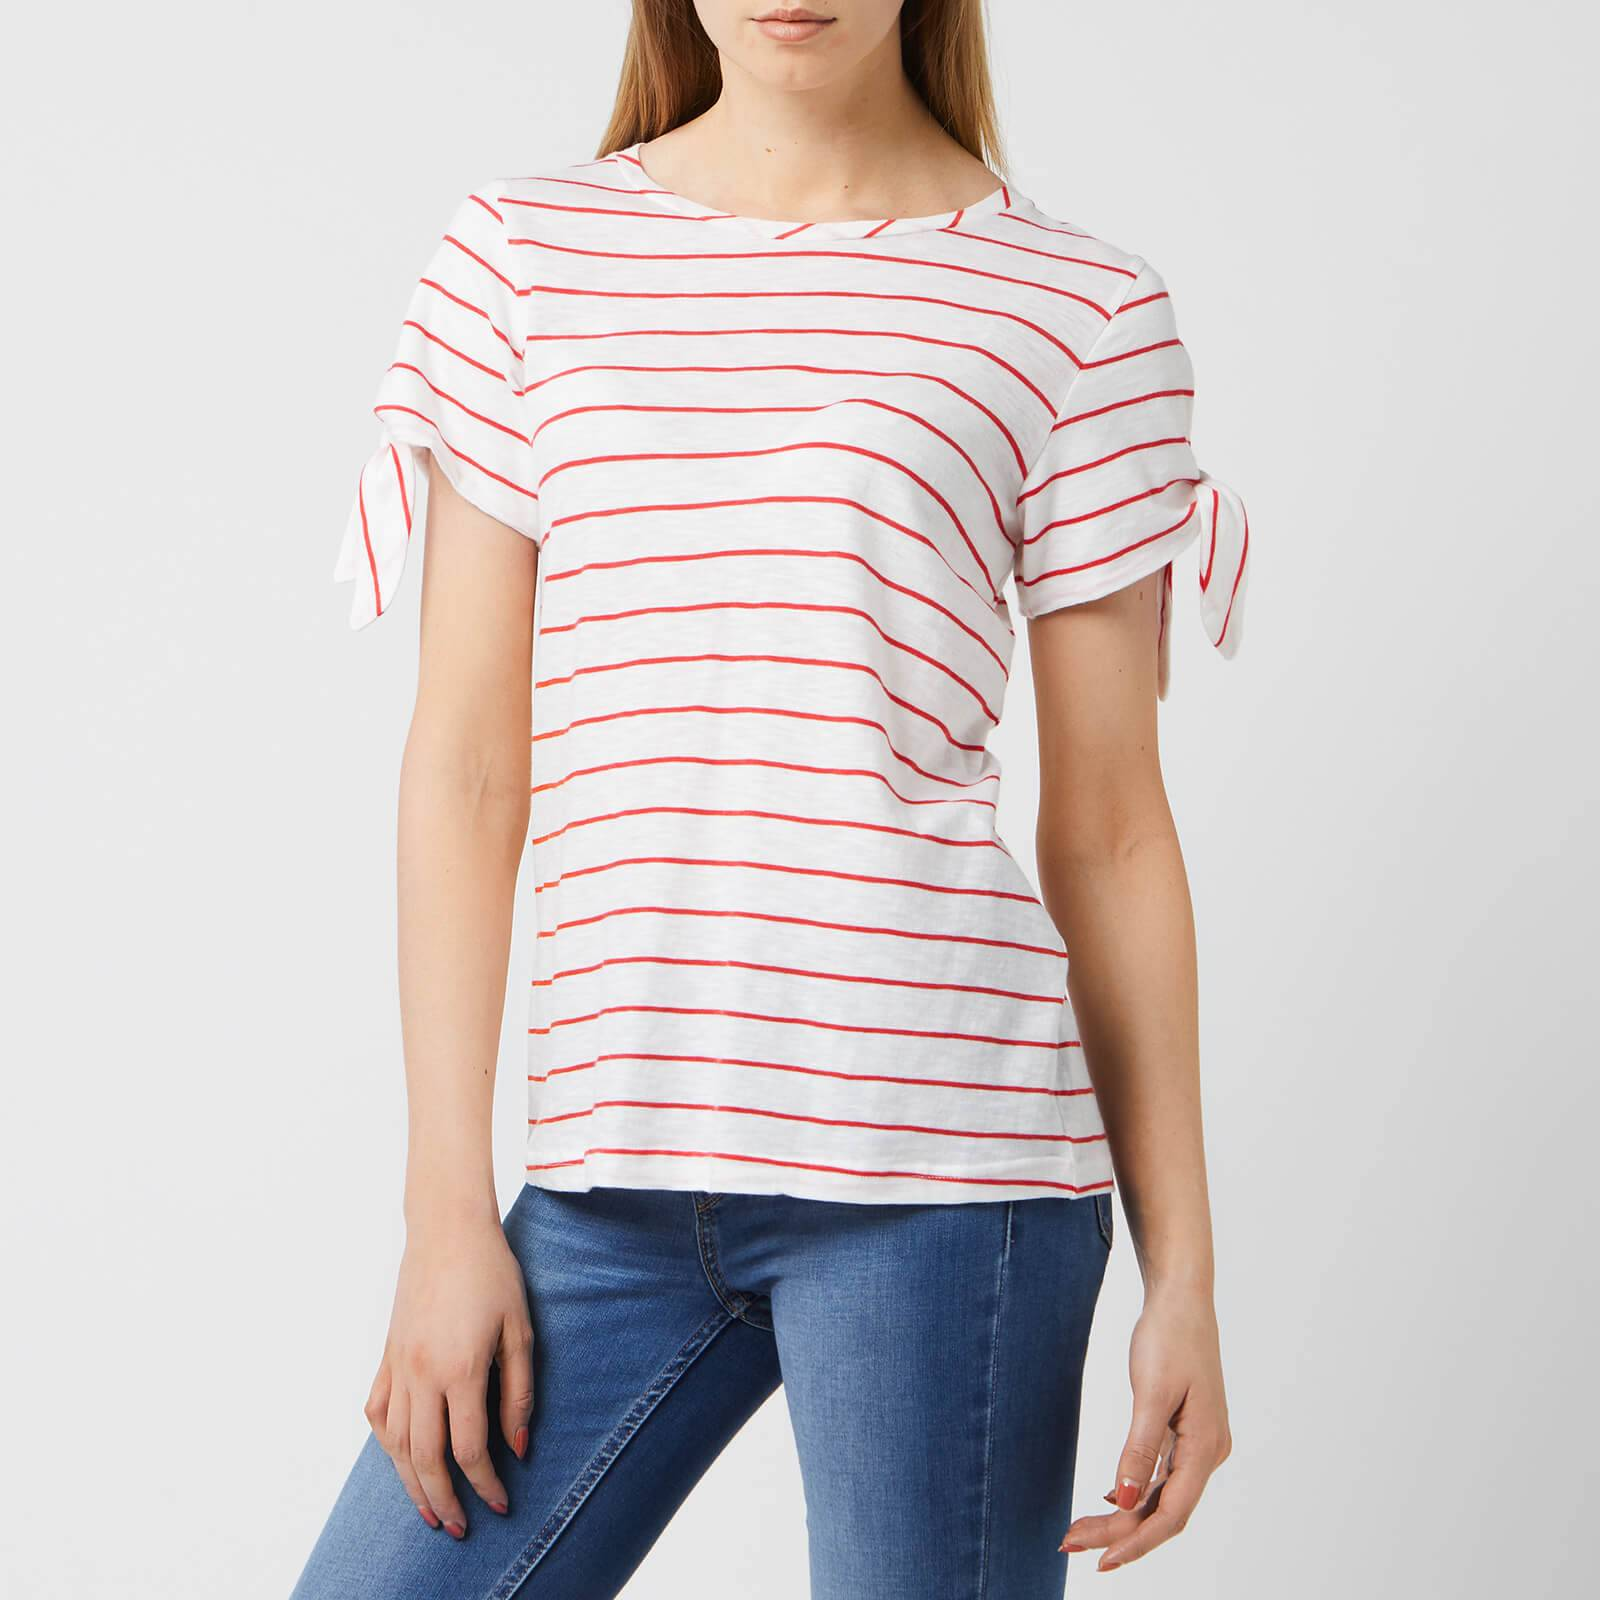 Joules Women's Tiggy Tie Sleeve Jersey Top - White Red Stripe - UK 12 - Red